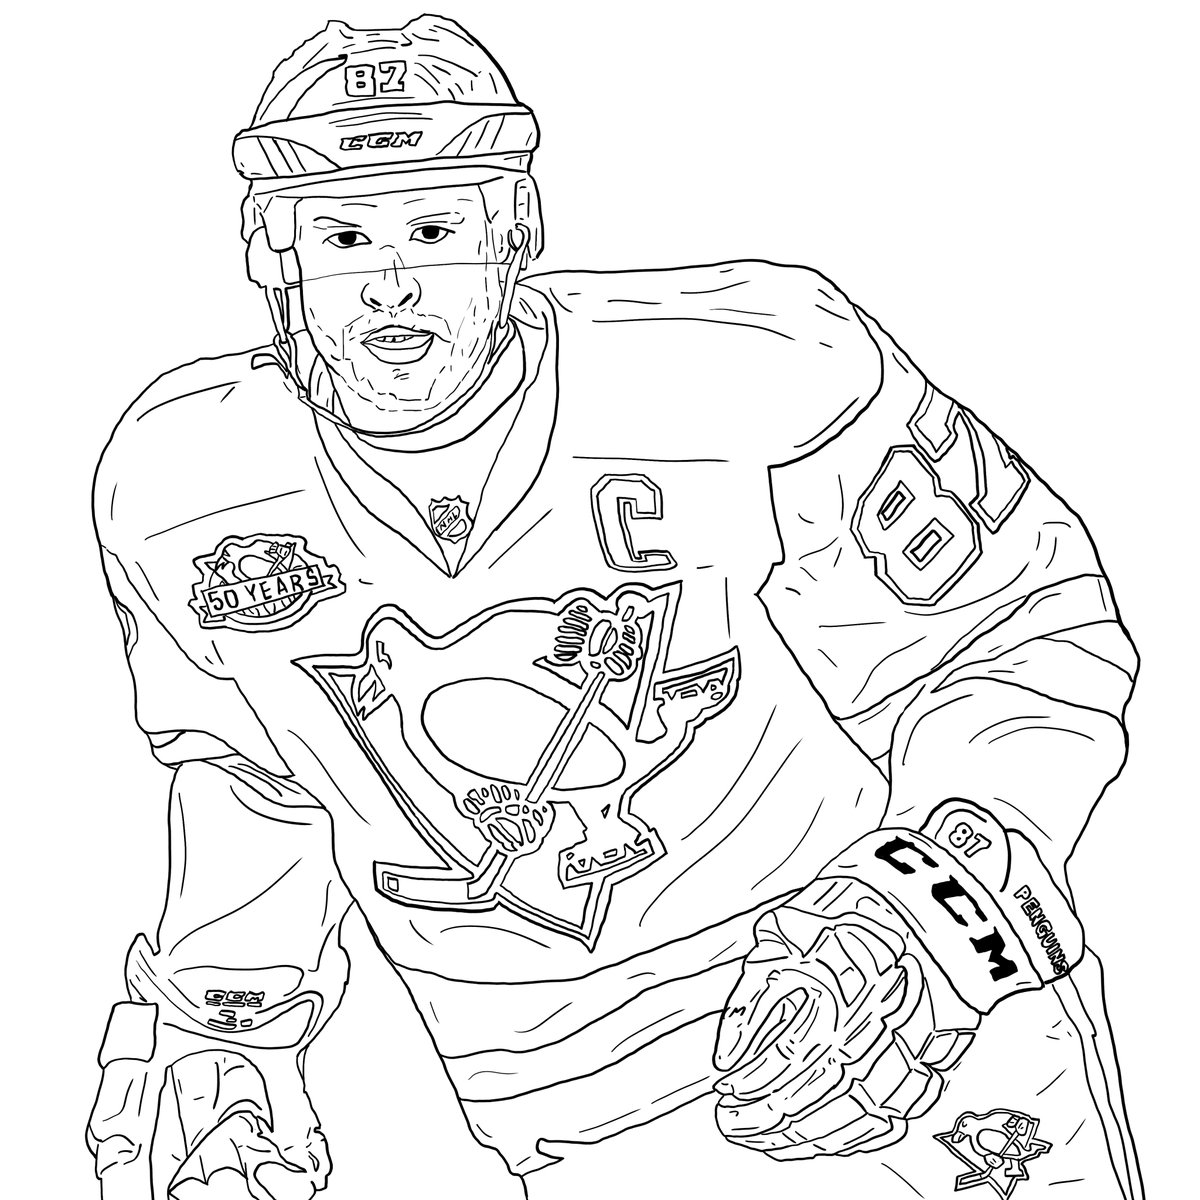 Pittsburgh penguins drawing at free for for Sidney crosby coloring pages